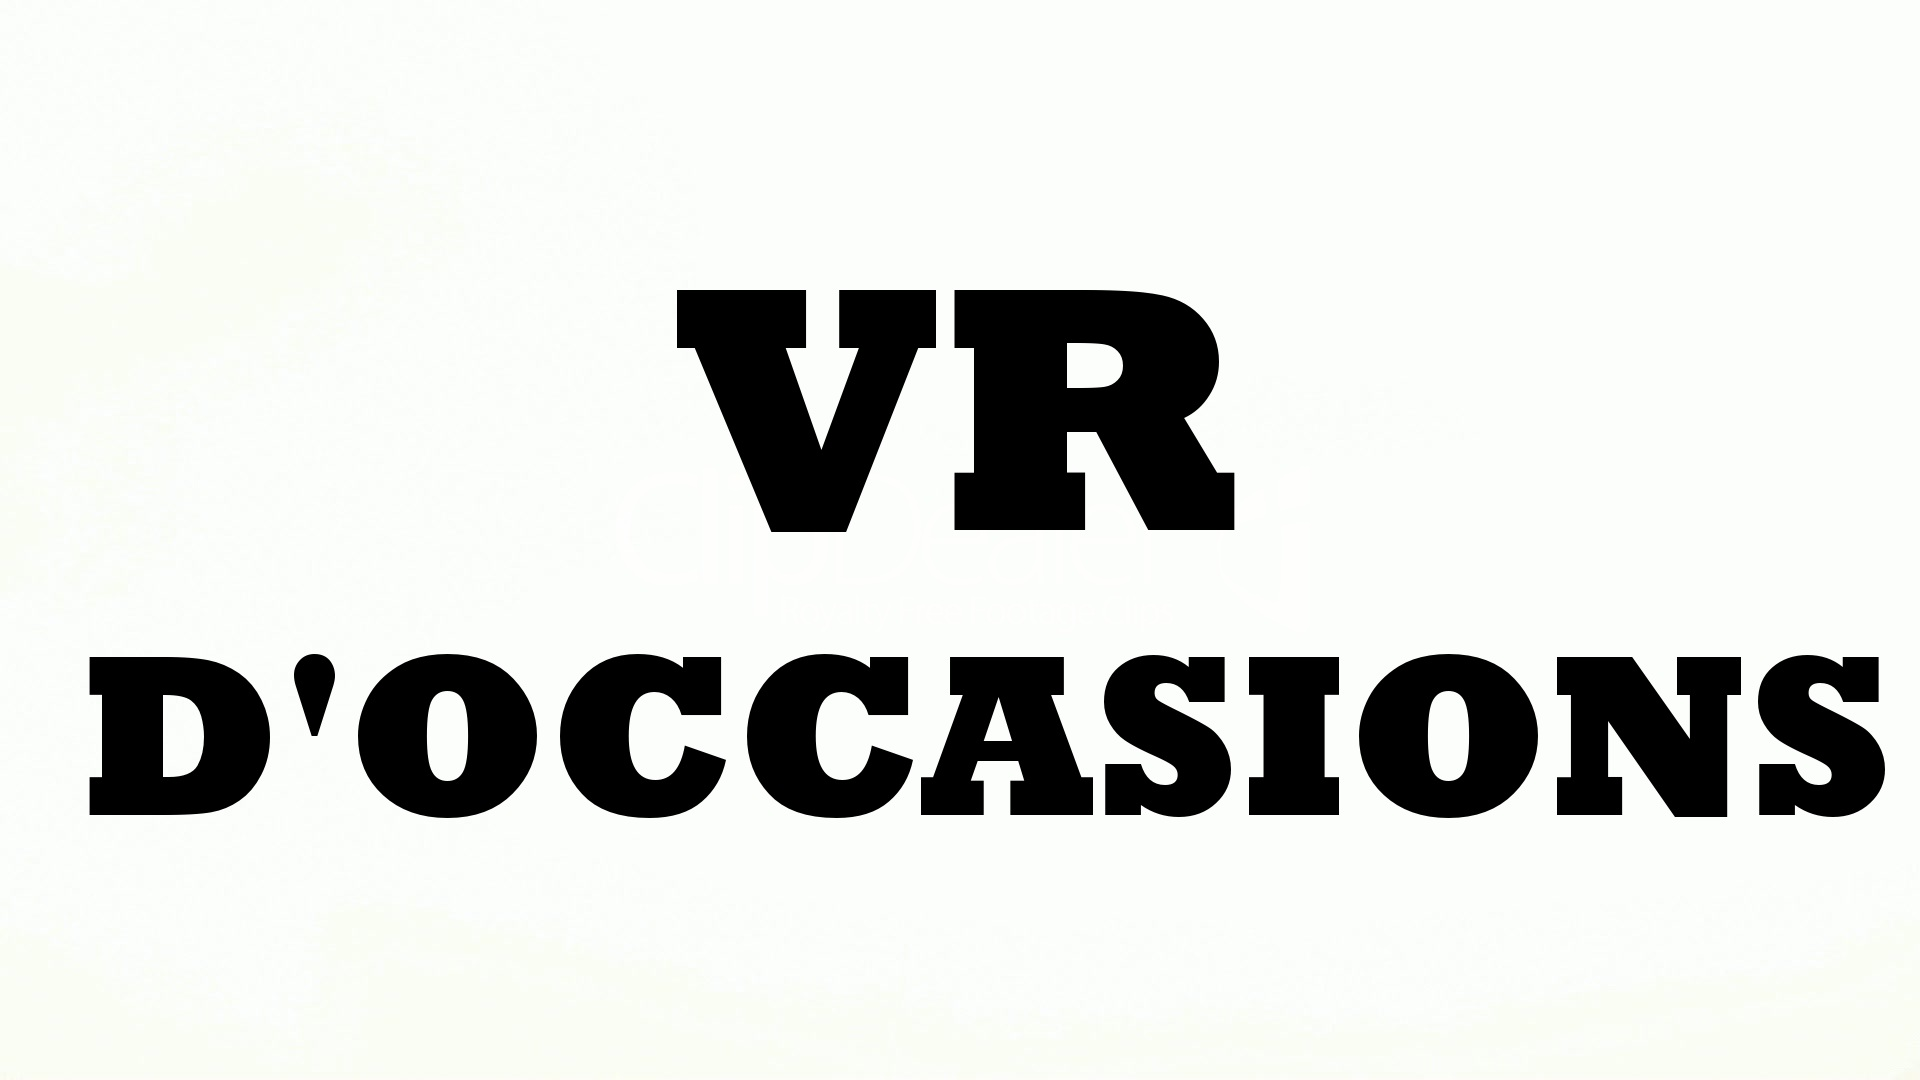 VR d'occasion - LM Cossette